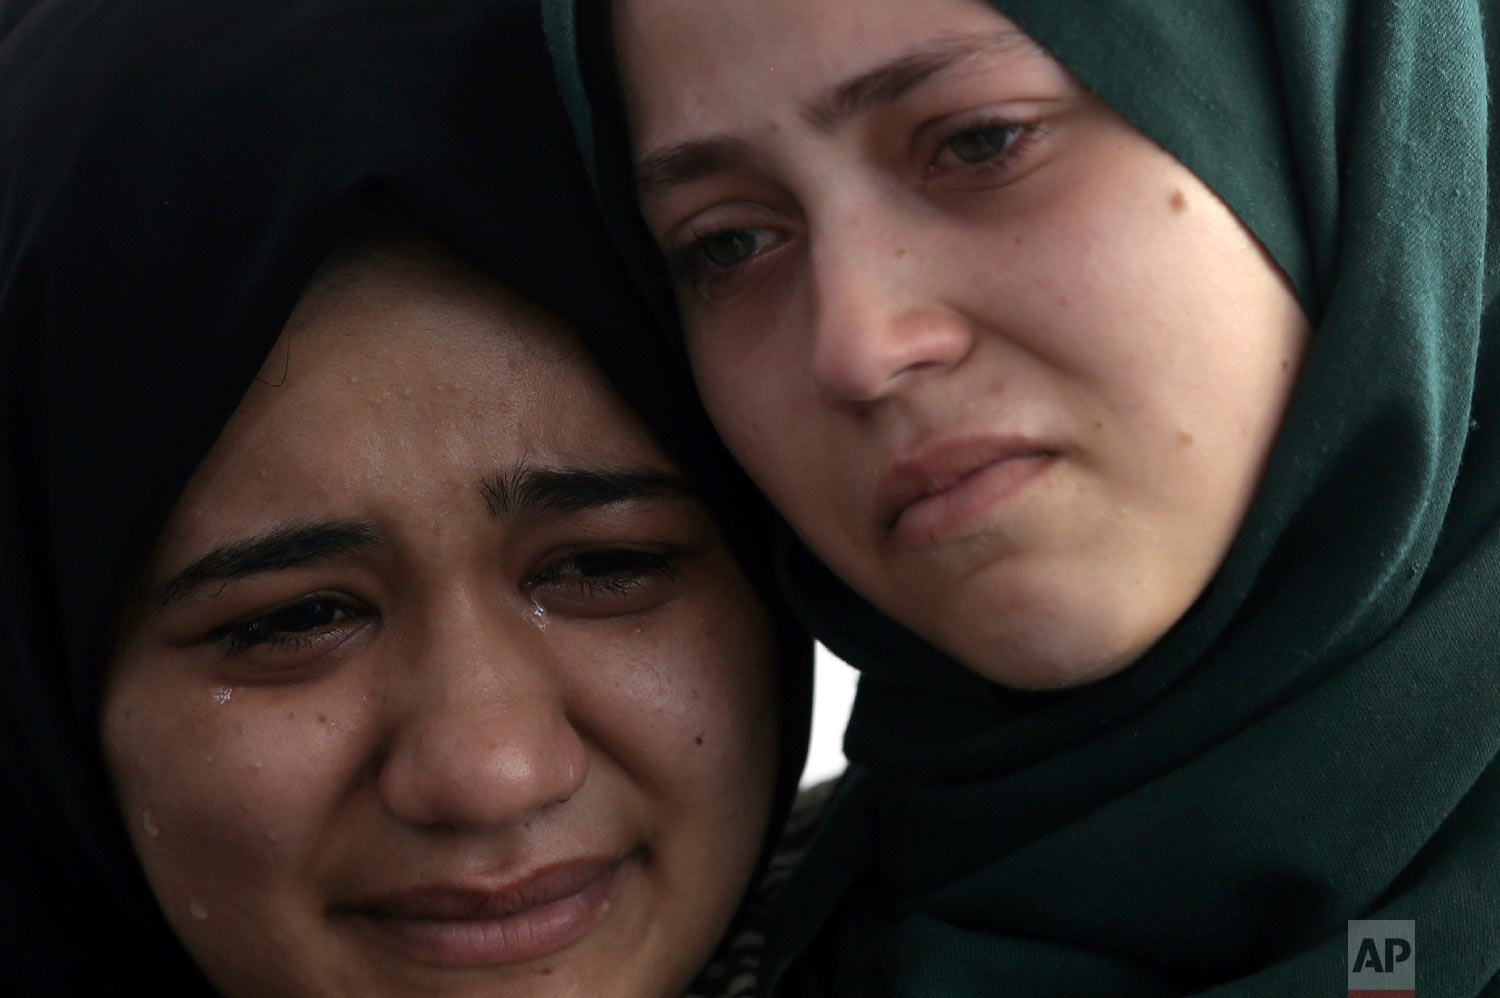 Relatives of Palestinian paramedic Abdullah al-Qutati, who was shot and killed during the Friday's protest at the Gaza Strip's border with Israel, mourn in the family home during his funeral in town of Rafah, southern Gaza Strip, Saturday, Aug.11, 2018. (AP Photo/Khalil Hamra)